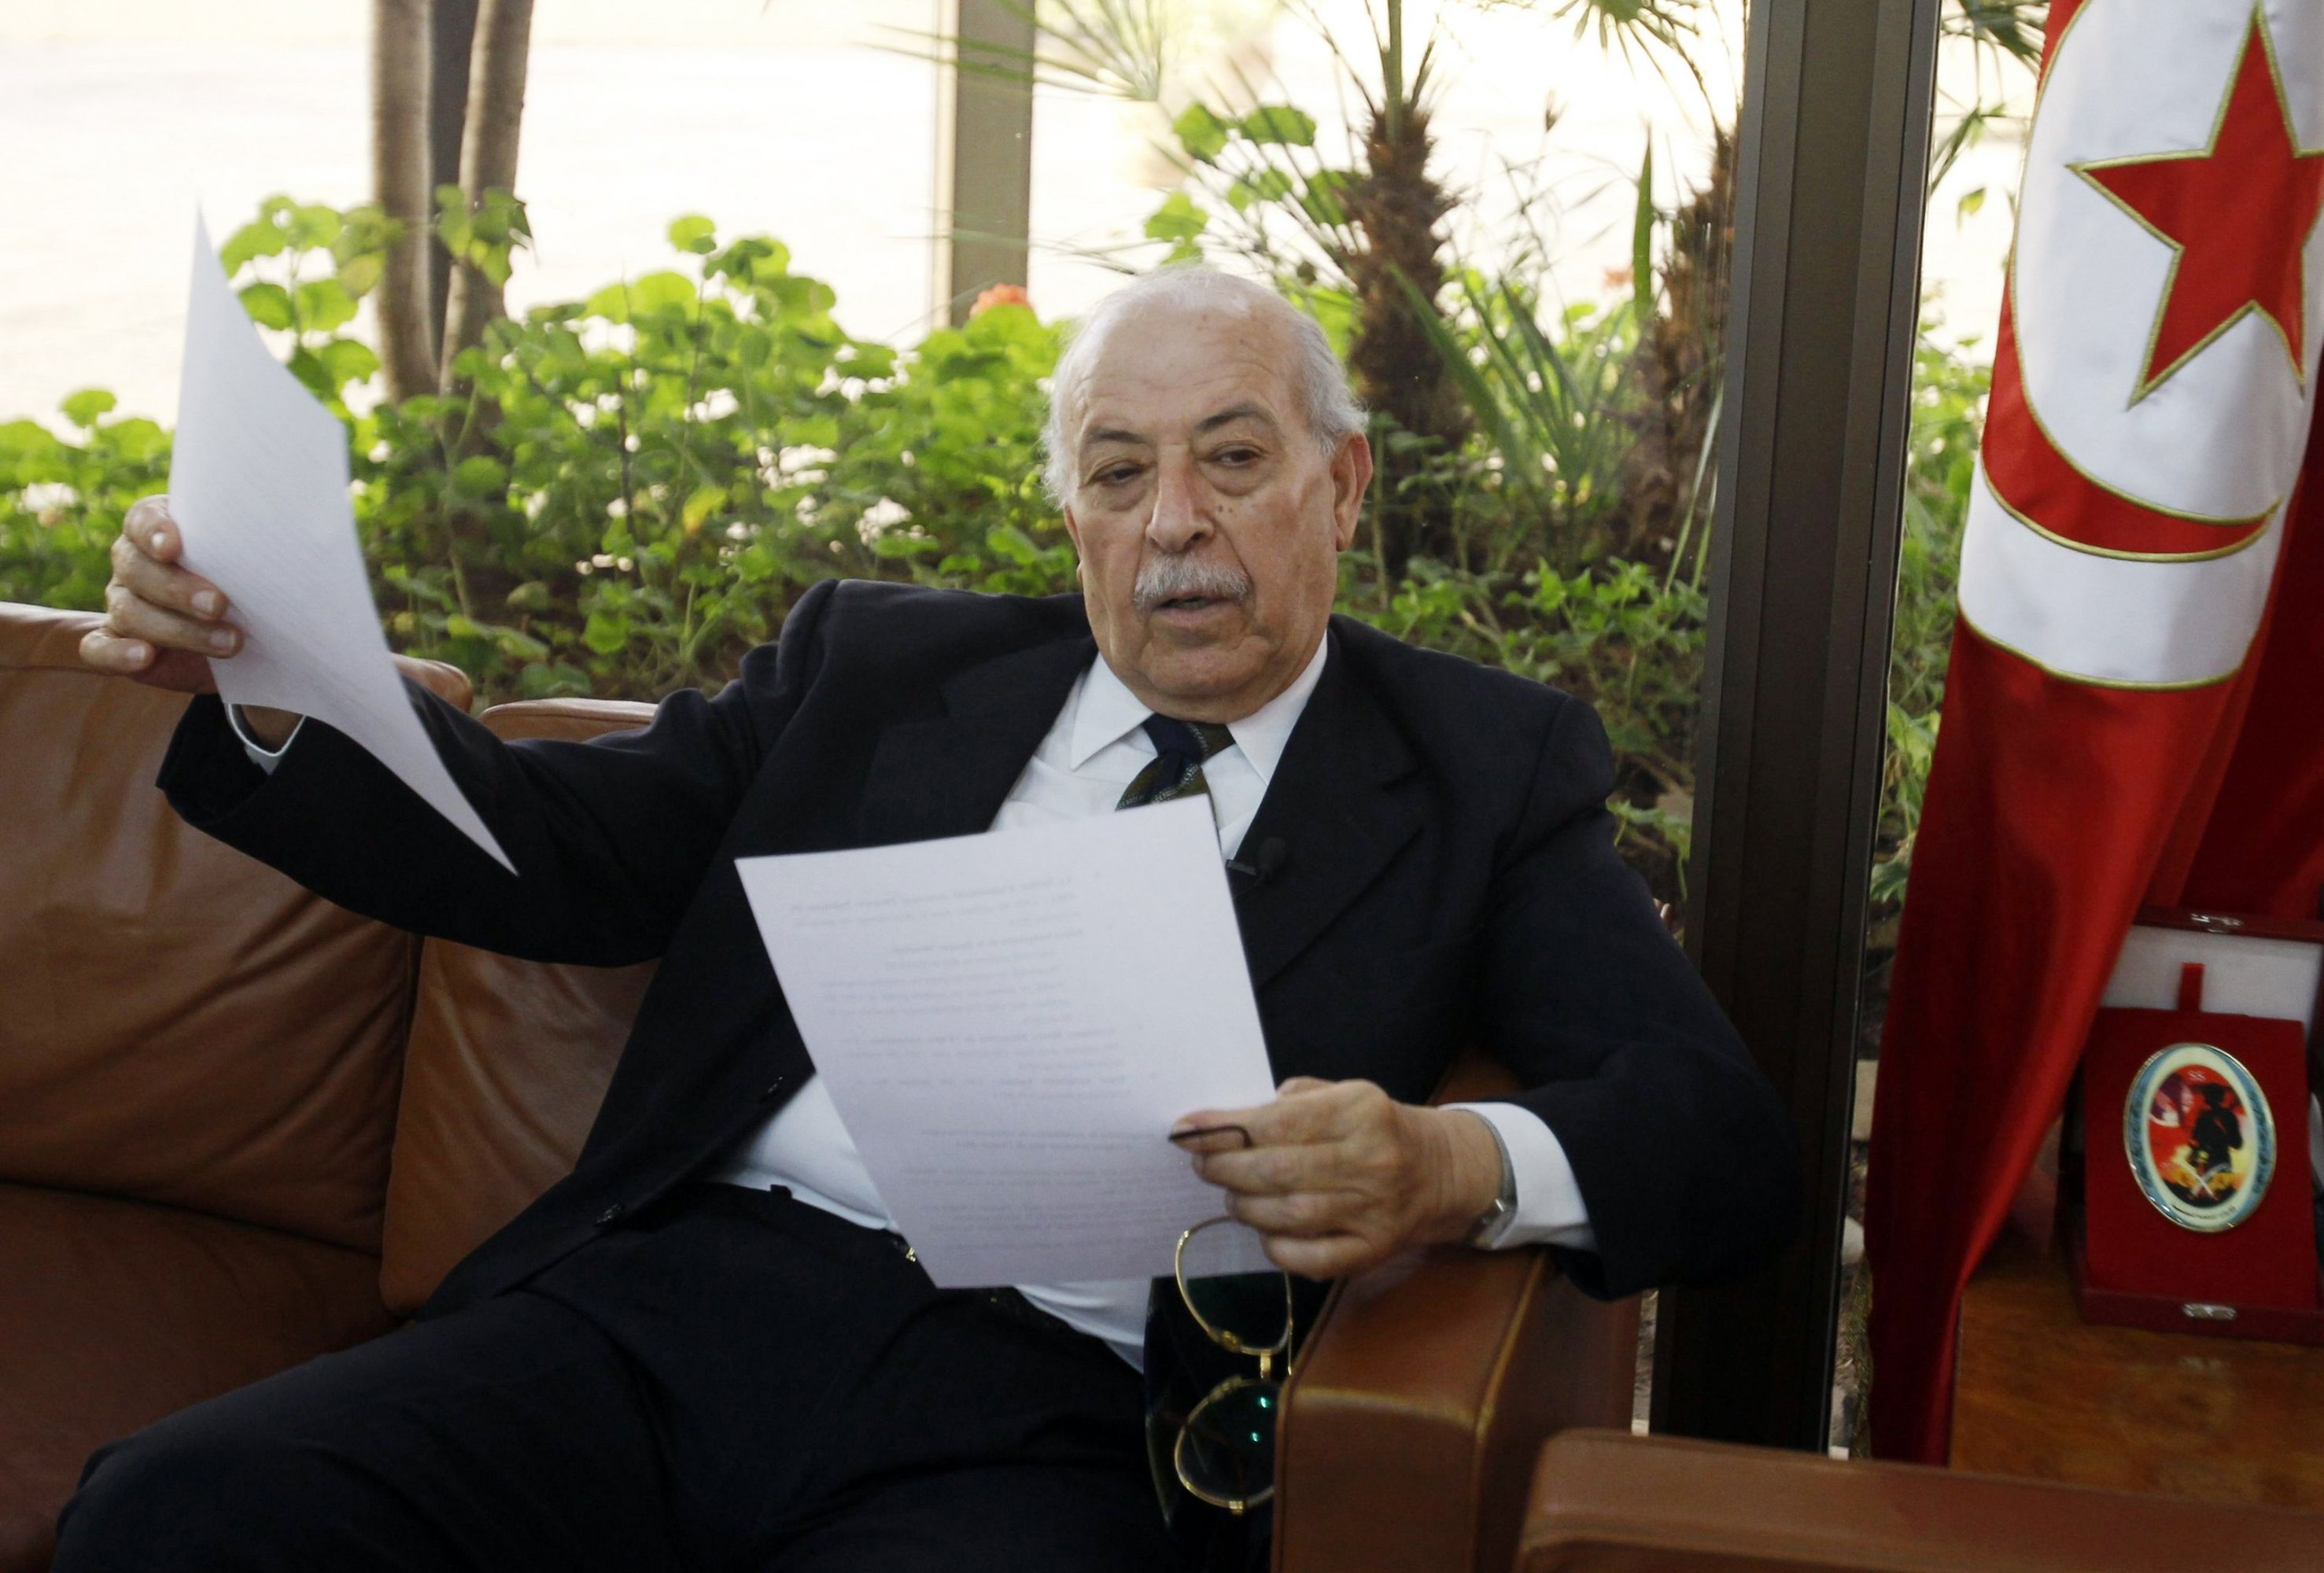 A file picture shows former Central Bank Governor Chedly Ayari during an interview in Tunis. (Reuters)